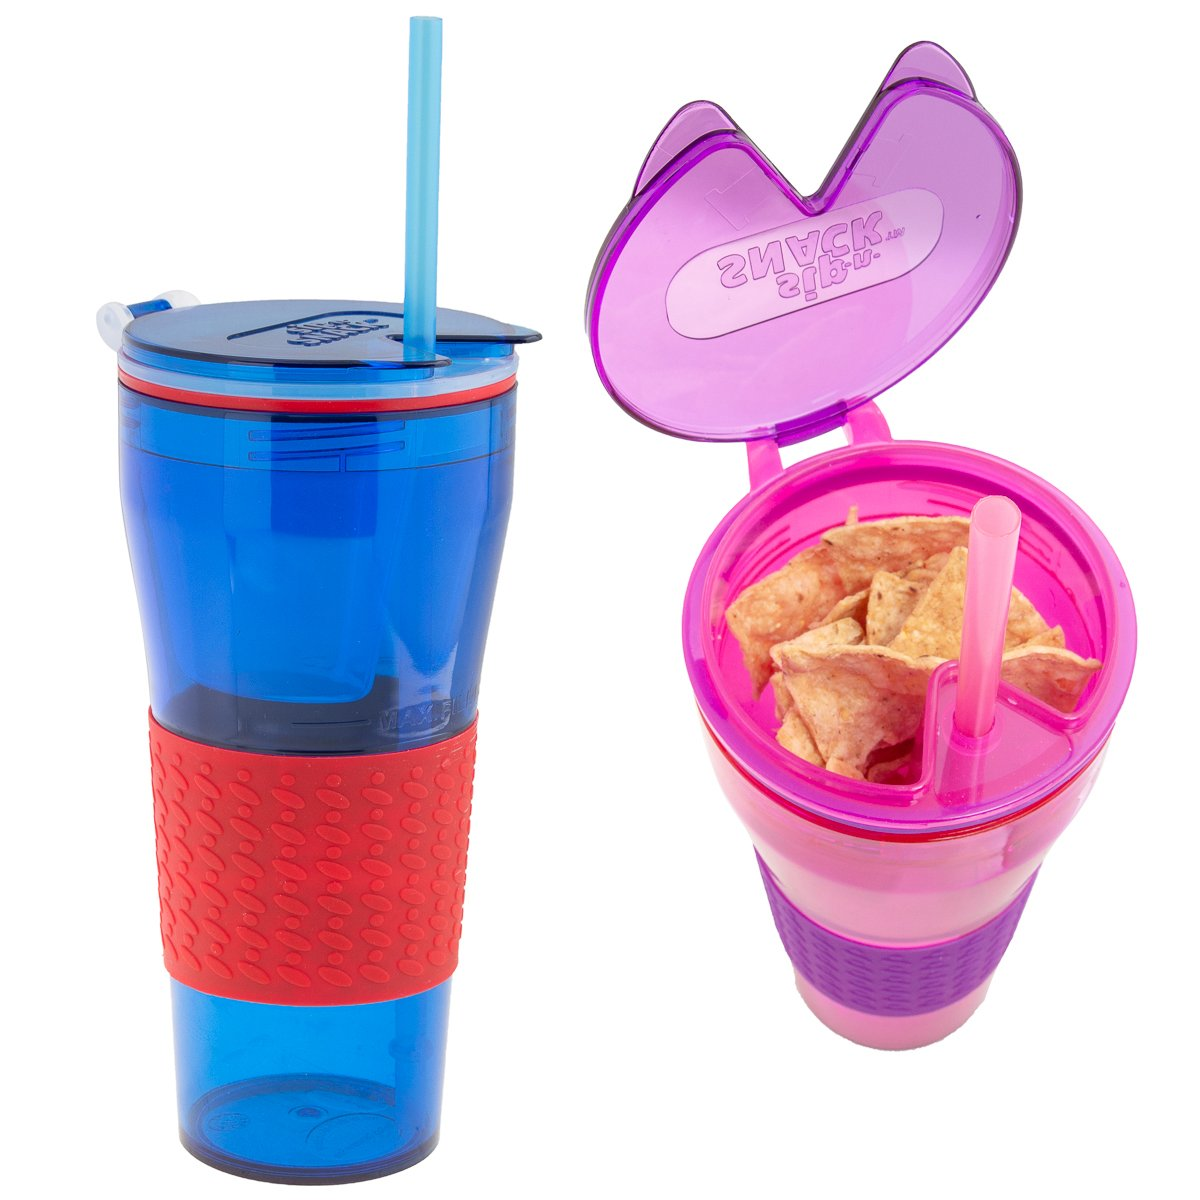 Sip-N-Snack (2 Pack) 2-in-1 Kids Cups BPA-Free With Straws & Reusable Snack Container With Lids Snack Cup